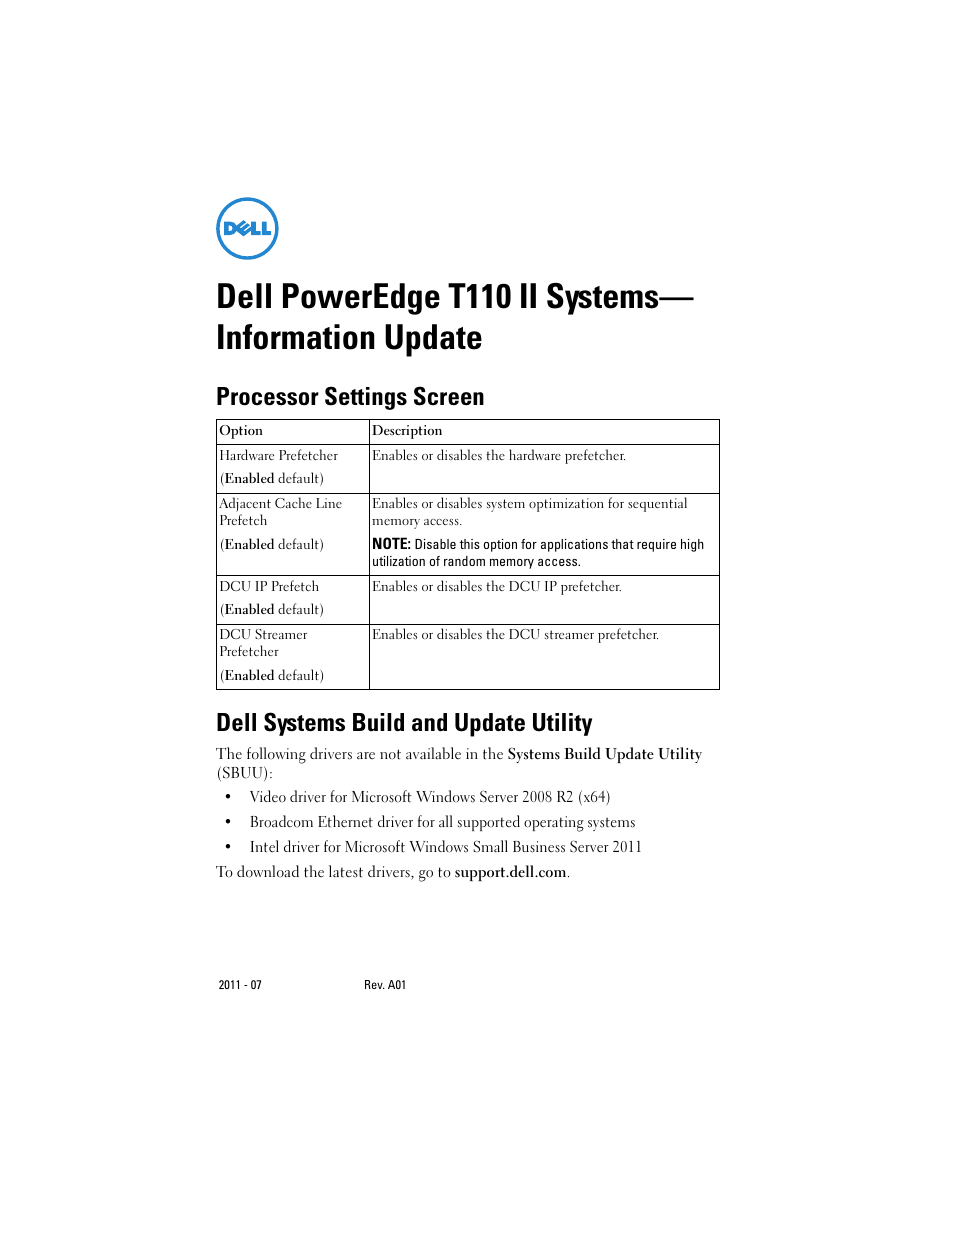 dell driver update utility poweredge